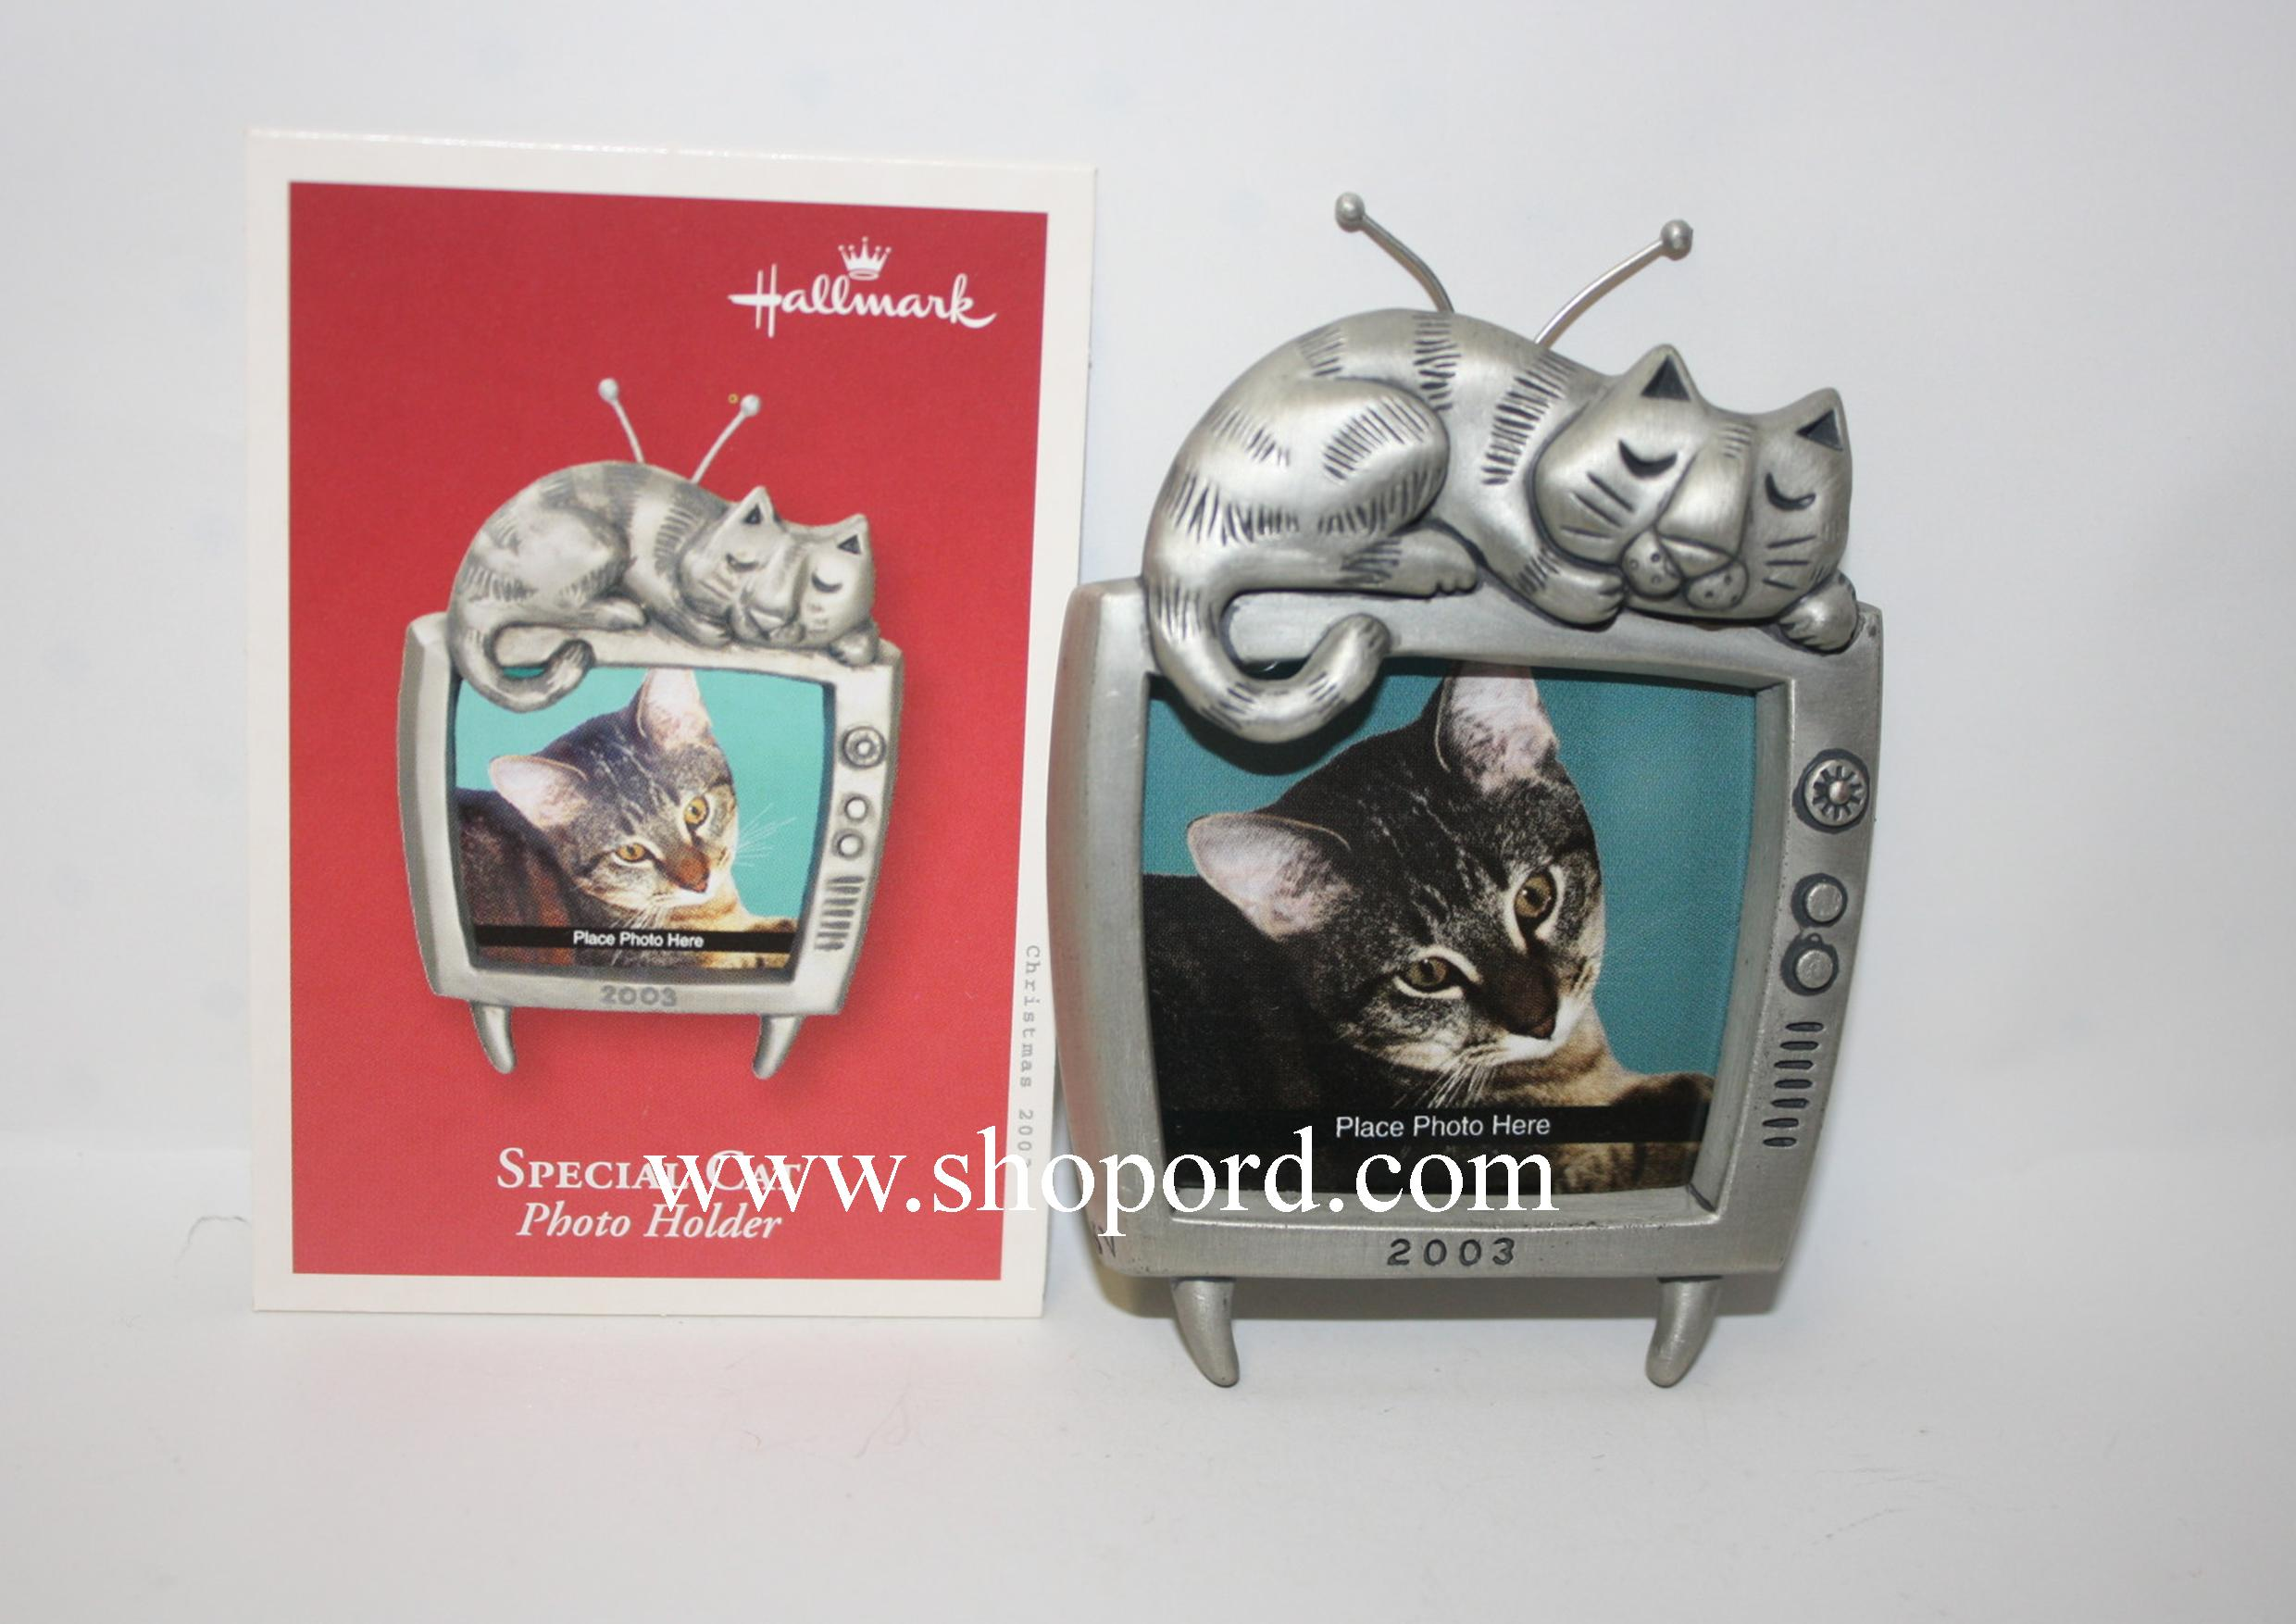 Hallmark 2003 Special Cat Ornament Photo Holder QXG8609